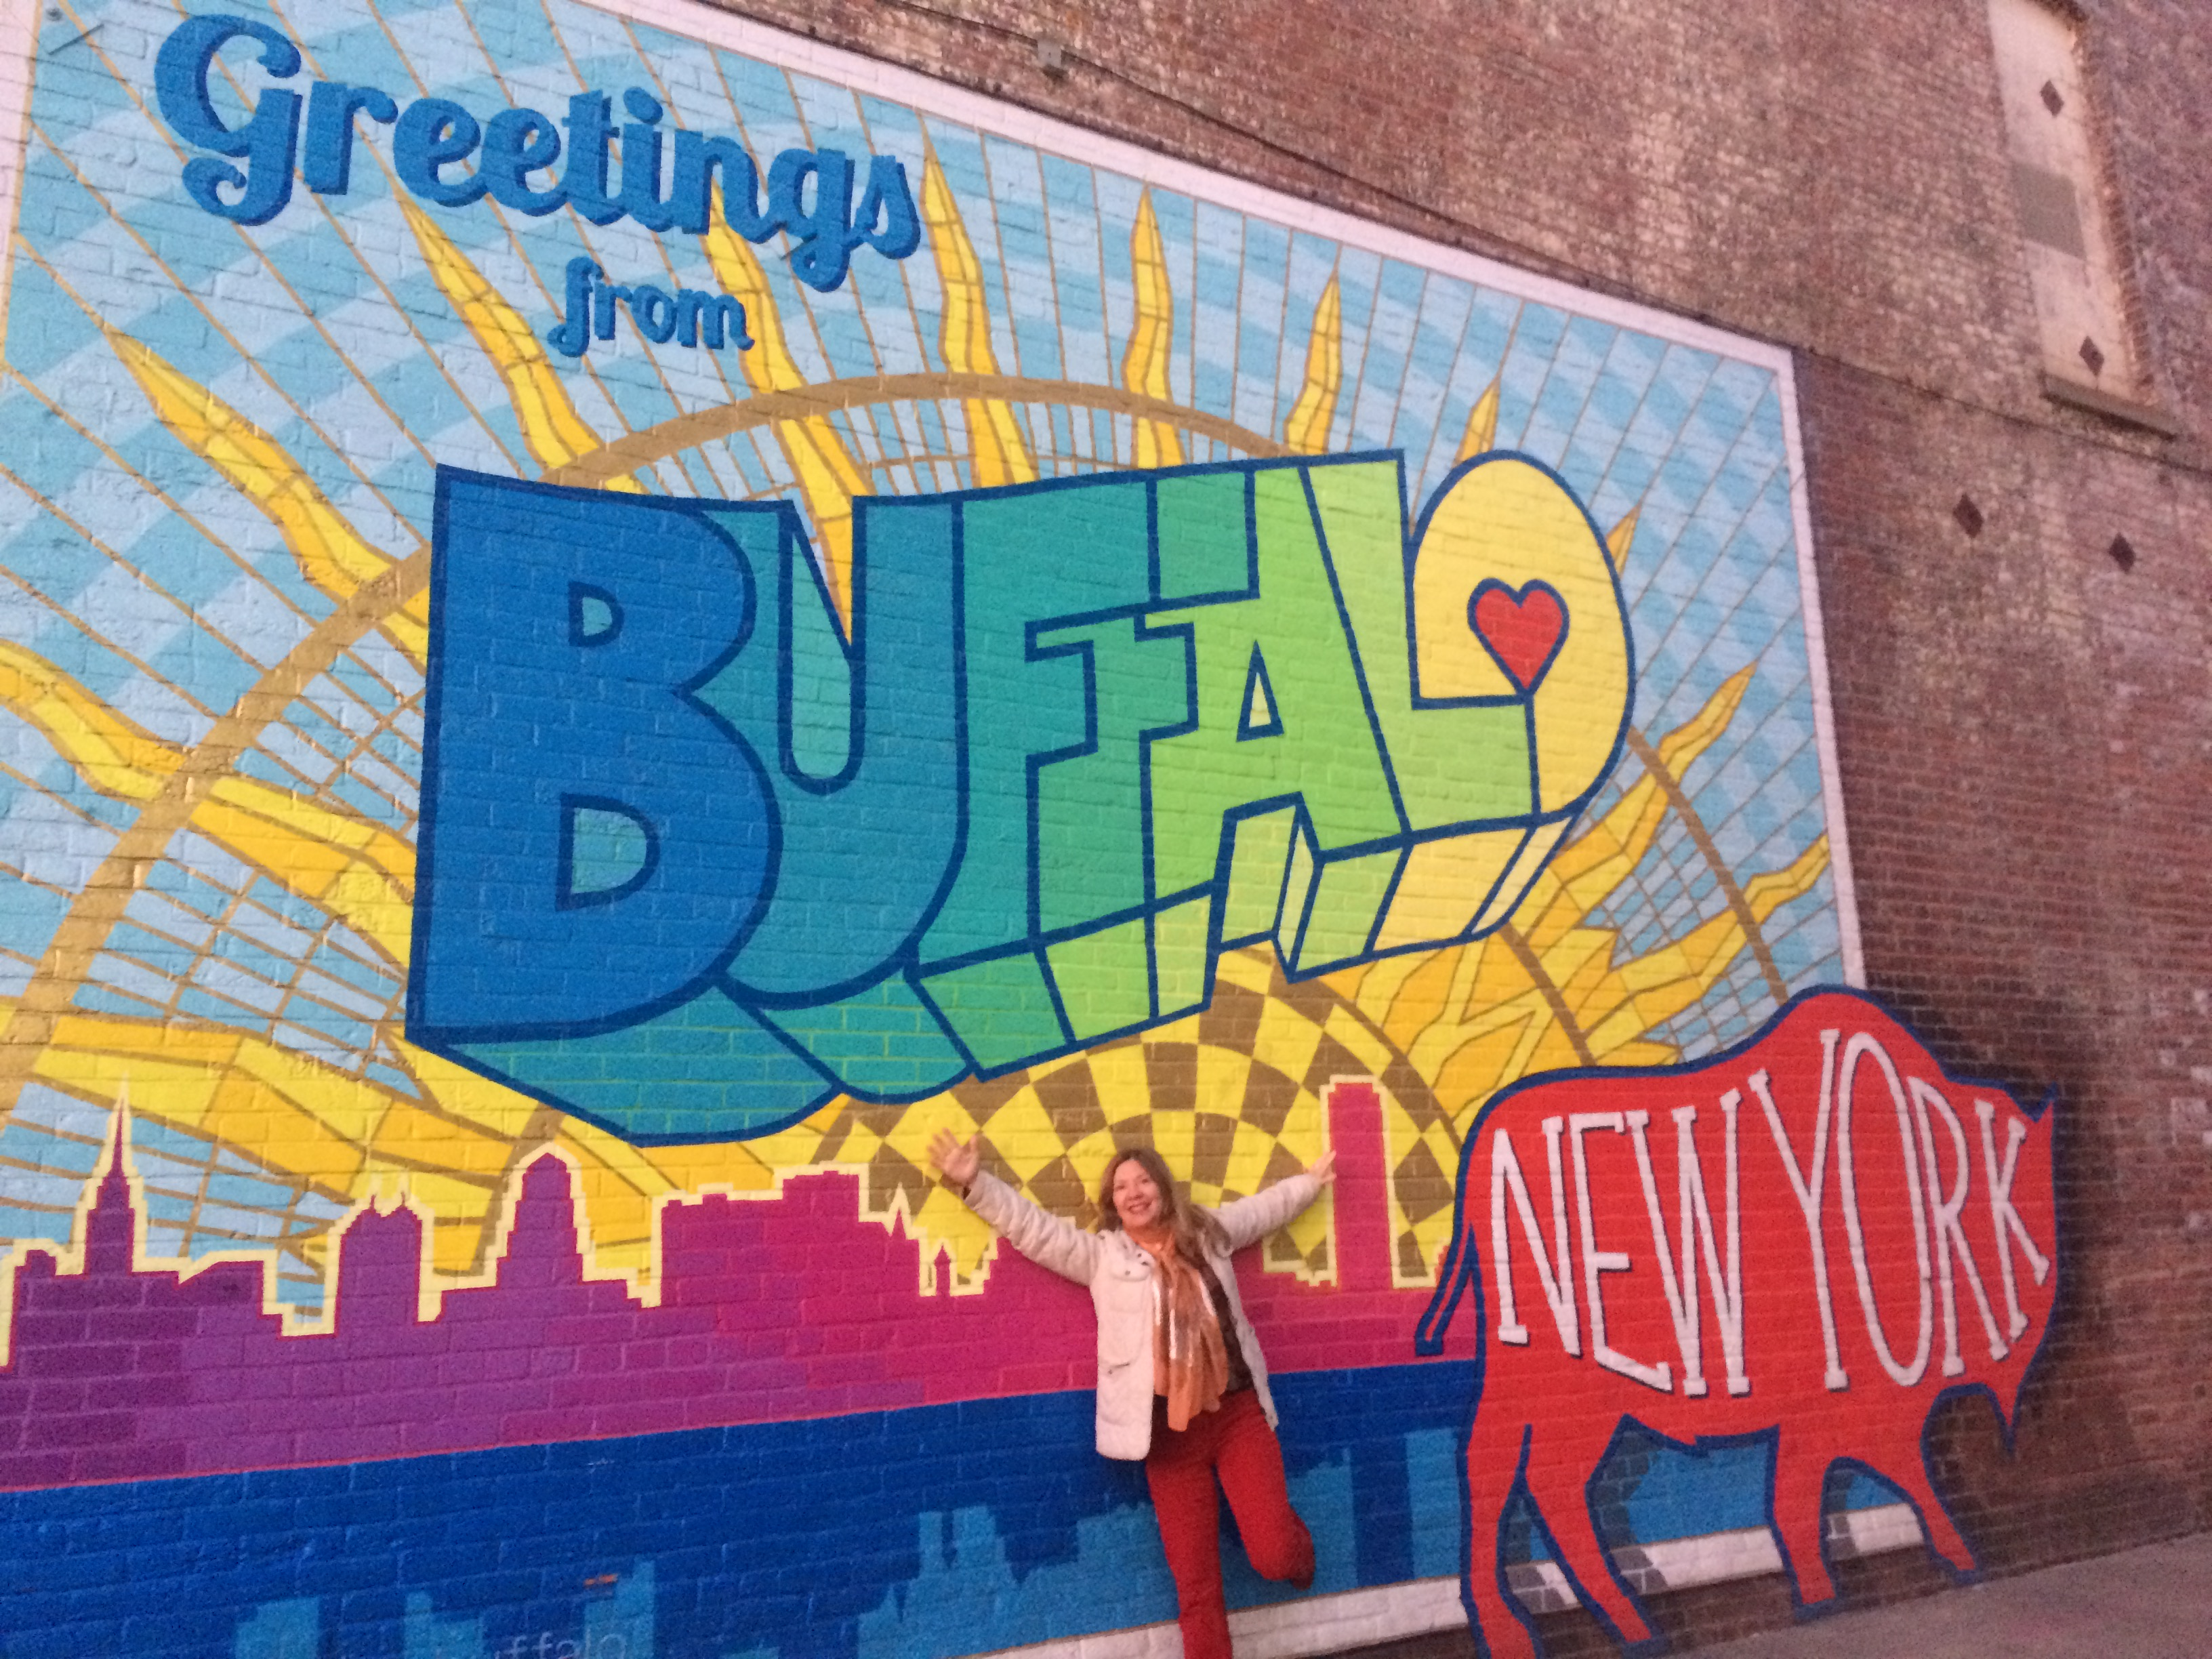 GreetingBuffalo